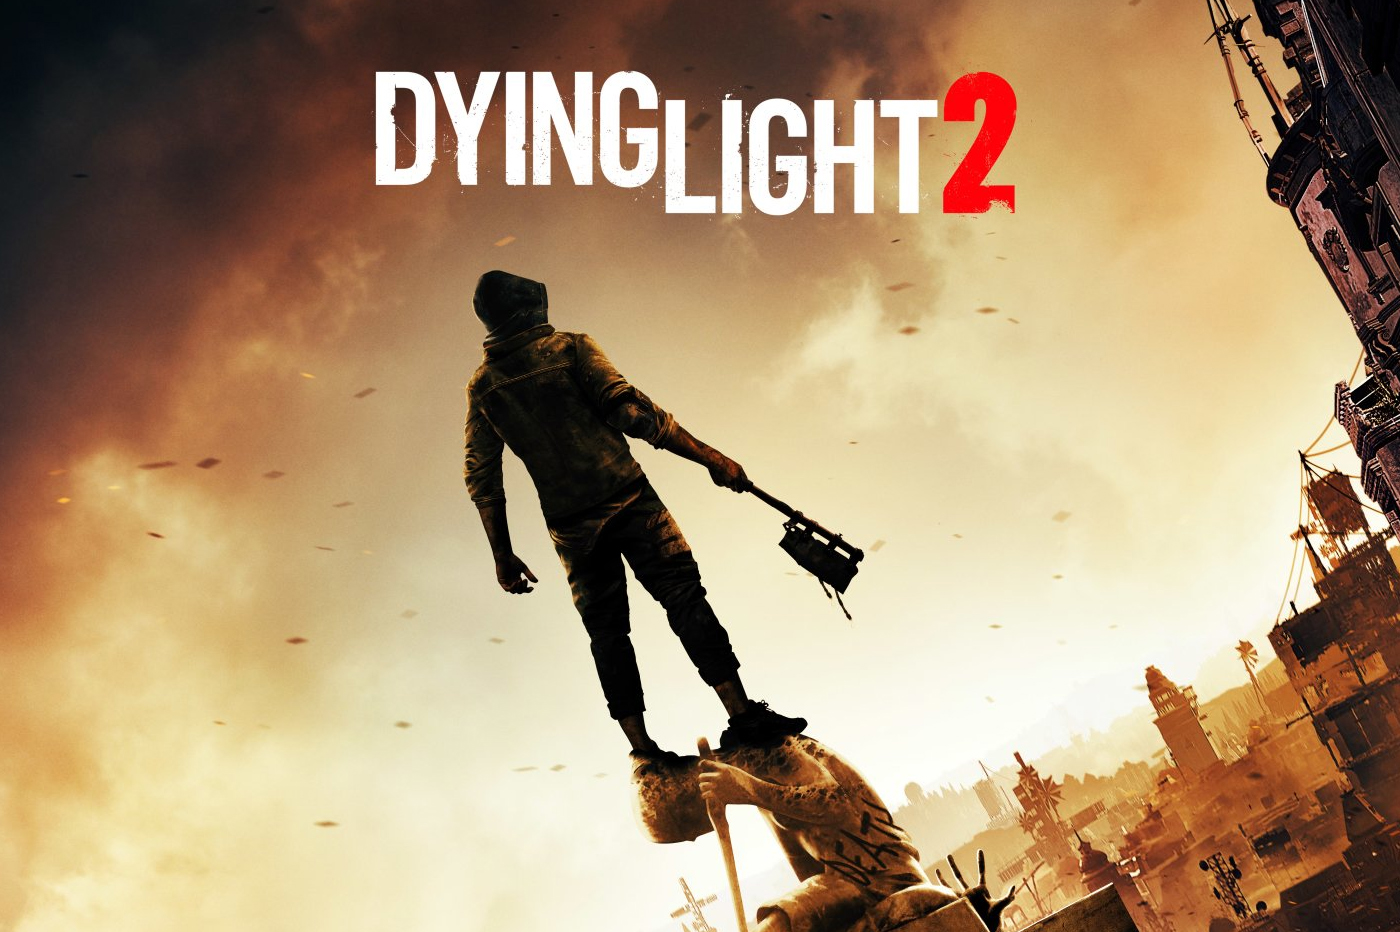 E3 2019 Dying Light 2 s'annonce pas mal